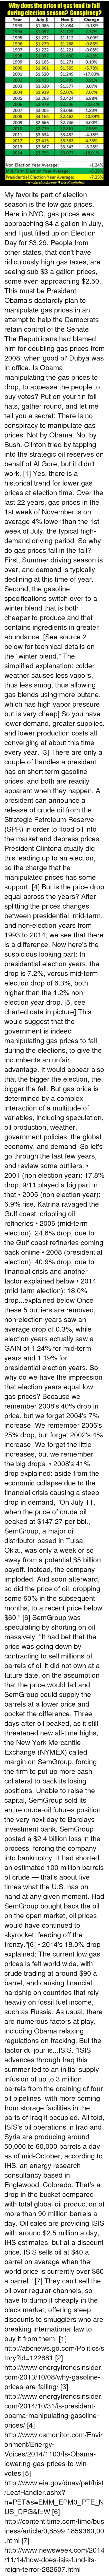 9/11, Al Gore, and Anaconda: Why does the price of gastend to fall  during election season? Conspiracy?  July S Nov Change  Year  $1.086 $1.084  1993  -0.18%  1994 S 1.097 $1.123 2.37%  $1.222 $1.112 -9.00%  1995  1996 $1.279  $1.268  -0.86%  1997 $1.222  S1.221  -0.08%  1998 $1.097 $1.050 -4.28%  $1.165  $1.271 9.10%  1999  2000 $1.661 S 1.565 -5.78%  2001 $1.520 S1.249 -17.83%  2002 $1.433 $1.489 3.91%  S 30 $1.577 3.0  2003  31.939 $2.076 7.07%  $2.424 688%  2005  $2.268  2006 S2.979 S2.246 -24.61%  2007 3.005 $3.060  1.83%  2008 $4.165 $2.462 -40.89%  2009  $2.666 $2.746 3.00%  2010 $2.779 $2.861 2.95%  $3.634 $3.482  2011 -4.18%  2012 15 $3.563  4.339%  $3.567 $3.343 .6  2013  2014 $3.753 $3.077 -18.01%  Non Election Year Average:  1.24%  Mid-Term Election Year Average:  6.28  Presidential Election Year Average  7.23%  www.facebook.com/WeArecapitalists My favorite part of election season is the low gas prices.  Here in NYC, gas prices was approaching $4 a gallon in July, and I just filled up on Election Day for $3.29.  People from other states, that don't have ridiculously high gas taxes, are seeing sub $3 a gallon prices, some even approaching $2.50.  This must be President Obama's dastardly plan to manipulate gas prices in an attempt to help the Democrats retain control of the Senate.  The Republicans had blamed him for doubling gas prices from 2008, when good ol' Dubya was in office.  Is Obama manipulating the gas prices to drop, to appease the people to buy votes?  Put on your tin foil hats, gather round, and let me tell you a secret: There is no conspiracy to manipulate gas prices.  Not by Obama.  Not by Bush.  Clinton tried by tapping into the strategic oil reserves on behalf of Al Gore, but it didn't work. [1]   Yes, there is a historical trend for lower gas prices at election time.  Over the last 22 years, gas prices in the 1st week of November is on average 4% lower than the 1st week of July, the typical high-demand driving period.  So why do gas price